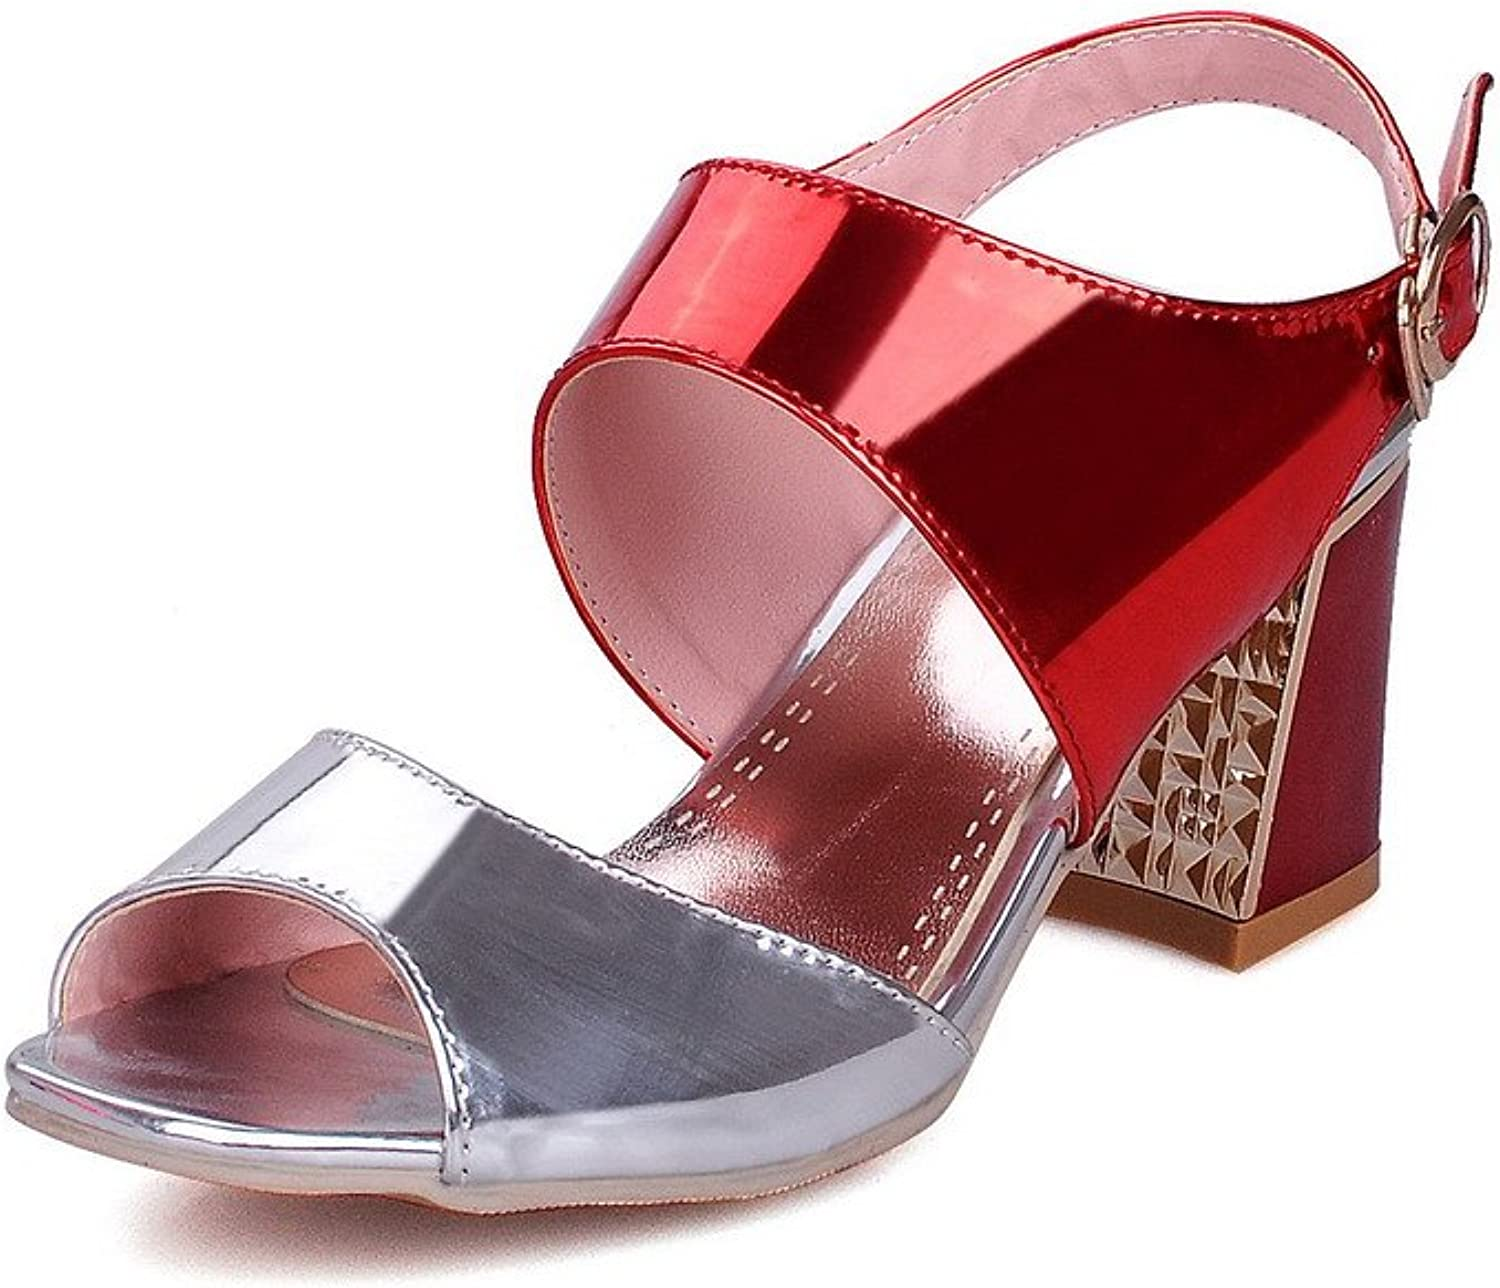 AllhqFashion Women's Kitten Heels Patent Leather Solid Buckle Open Toe Sandals